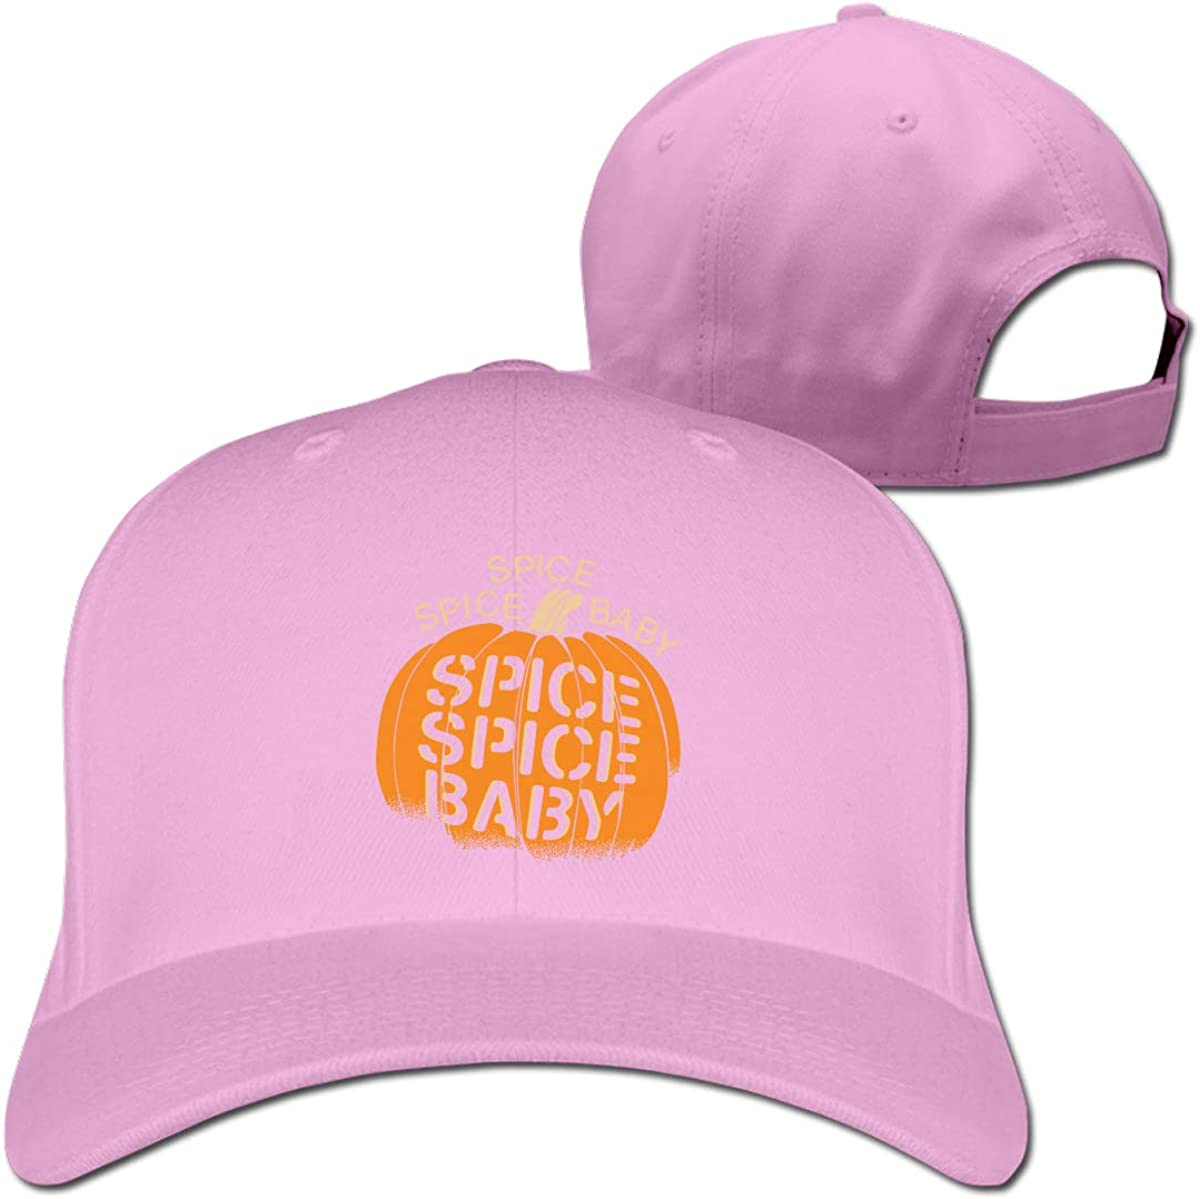 Spice Spice Baby Unisex Pure Color Baseball Cap Classic Adjustable Ball Hat